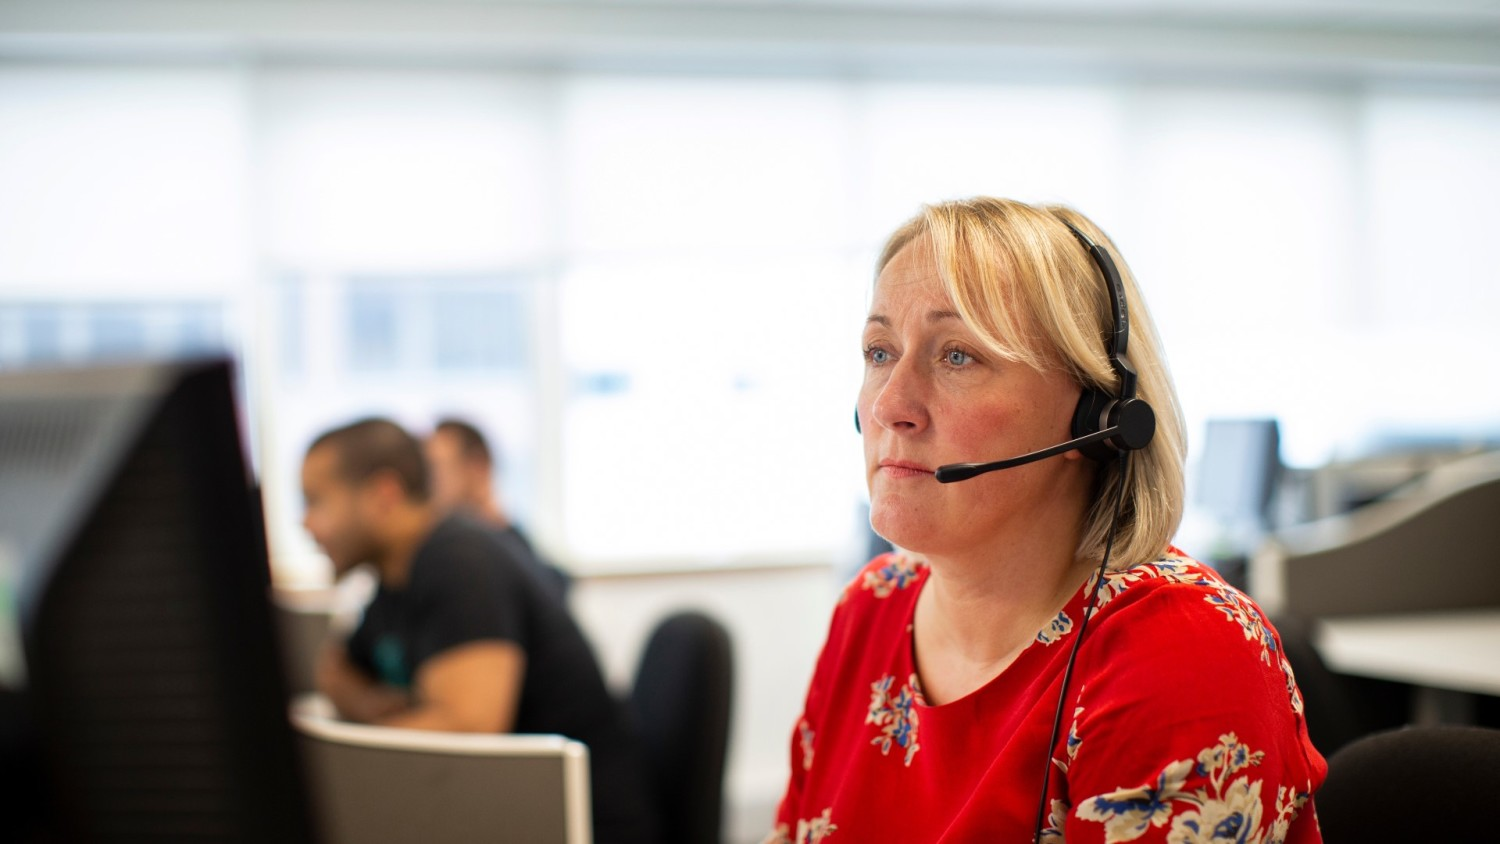 A Shelter helpline adviser on a call, wearing a headset